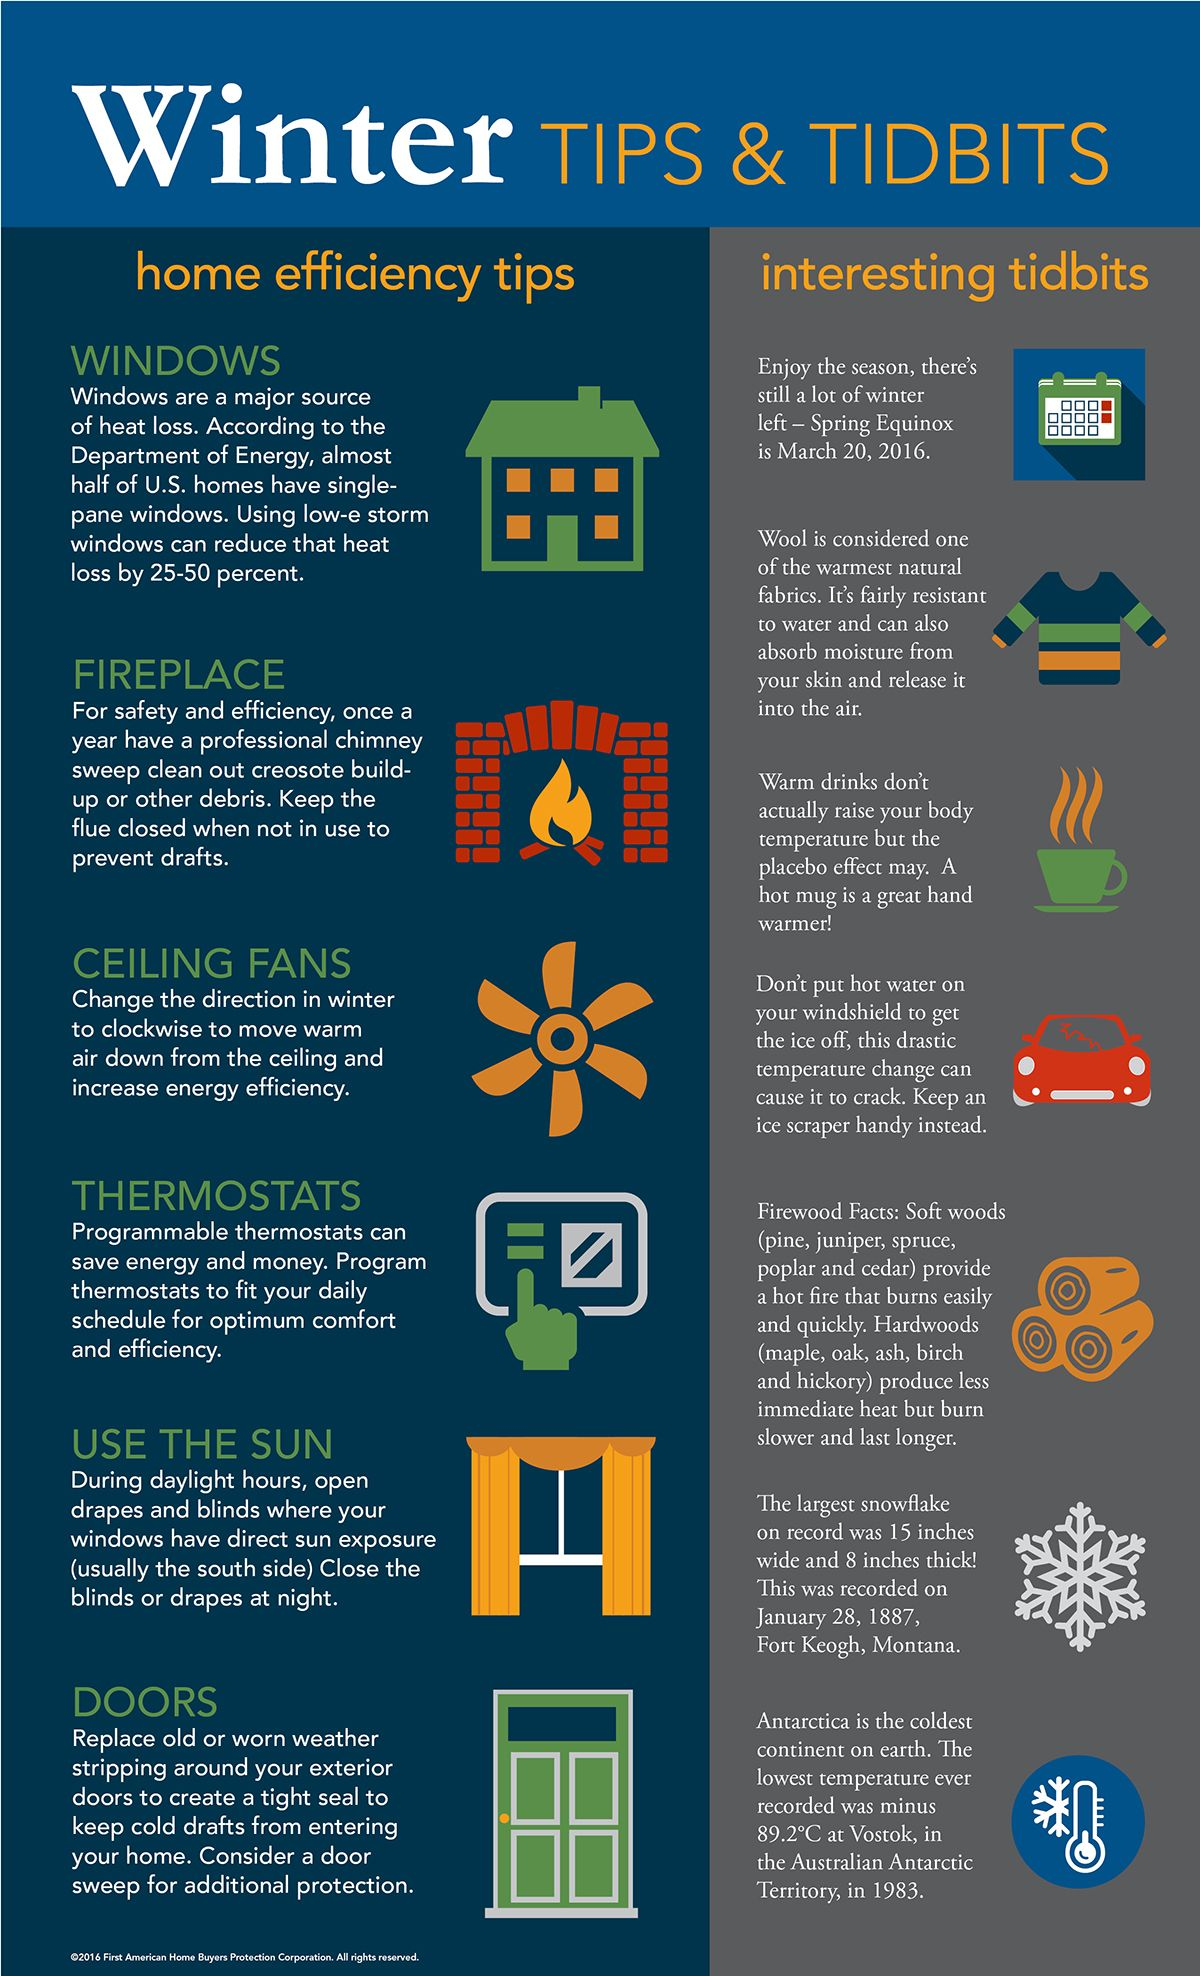 Winter Tips and Tidbits Home Care Buzz (With images